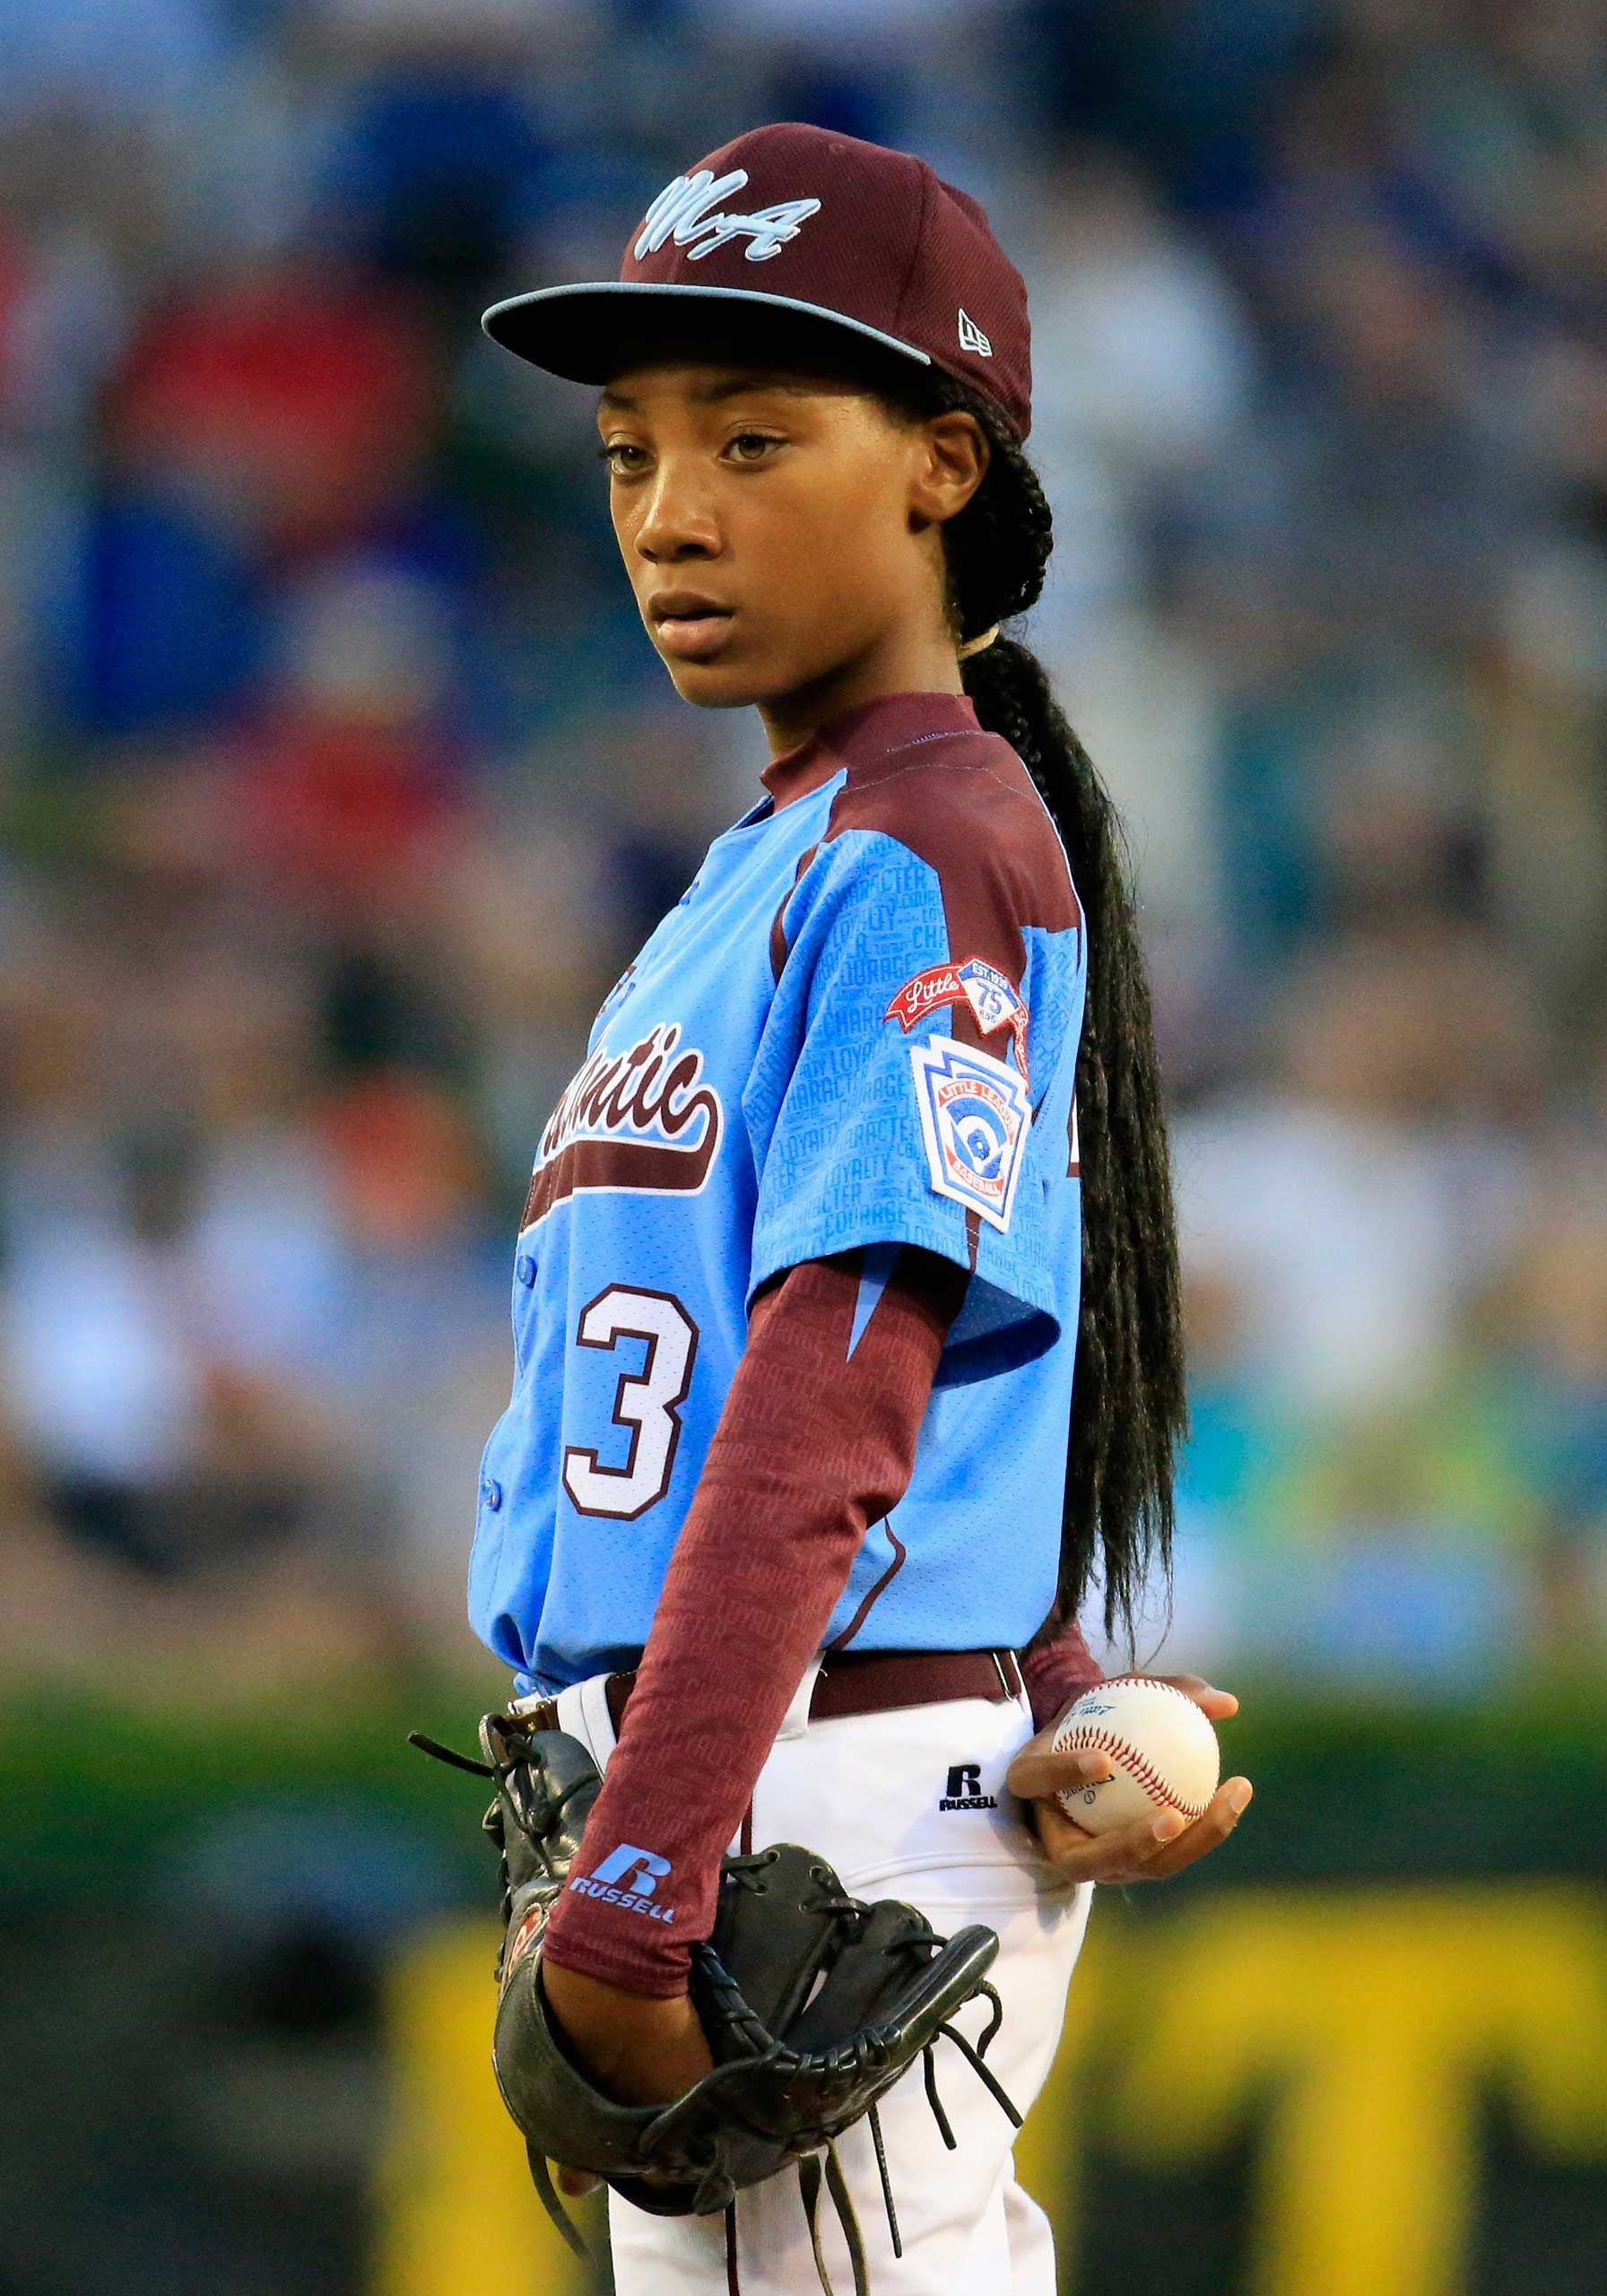 Mo'ne Davis #3 of Pennsylvania waits to pitch to a Nevada batter during the United States division game at the Little League World Series tournament at Lamade Stadium on August 20, 2014 in South Williamsport, Pennsylvania. (Photo by Rob Carr/Getty Images) *** Local Caption *** Mo'ne Davis